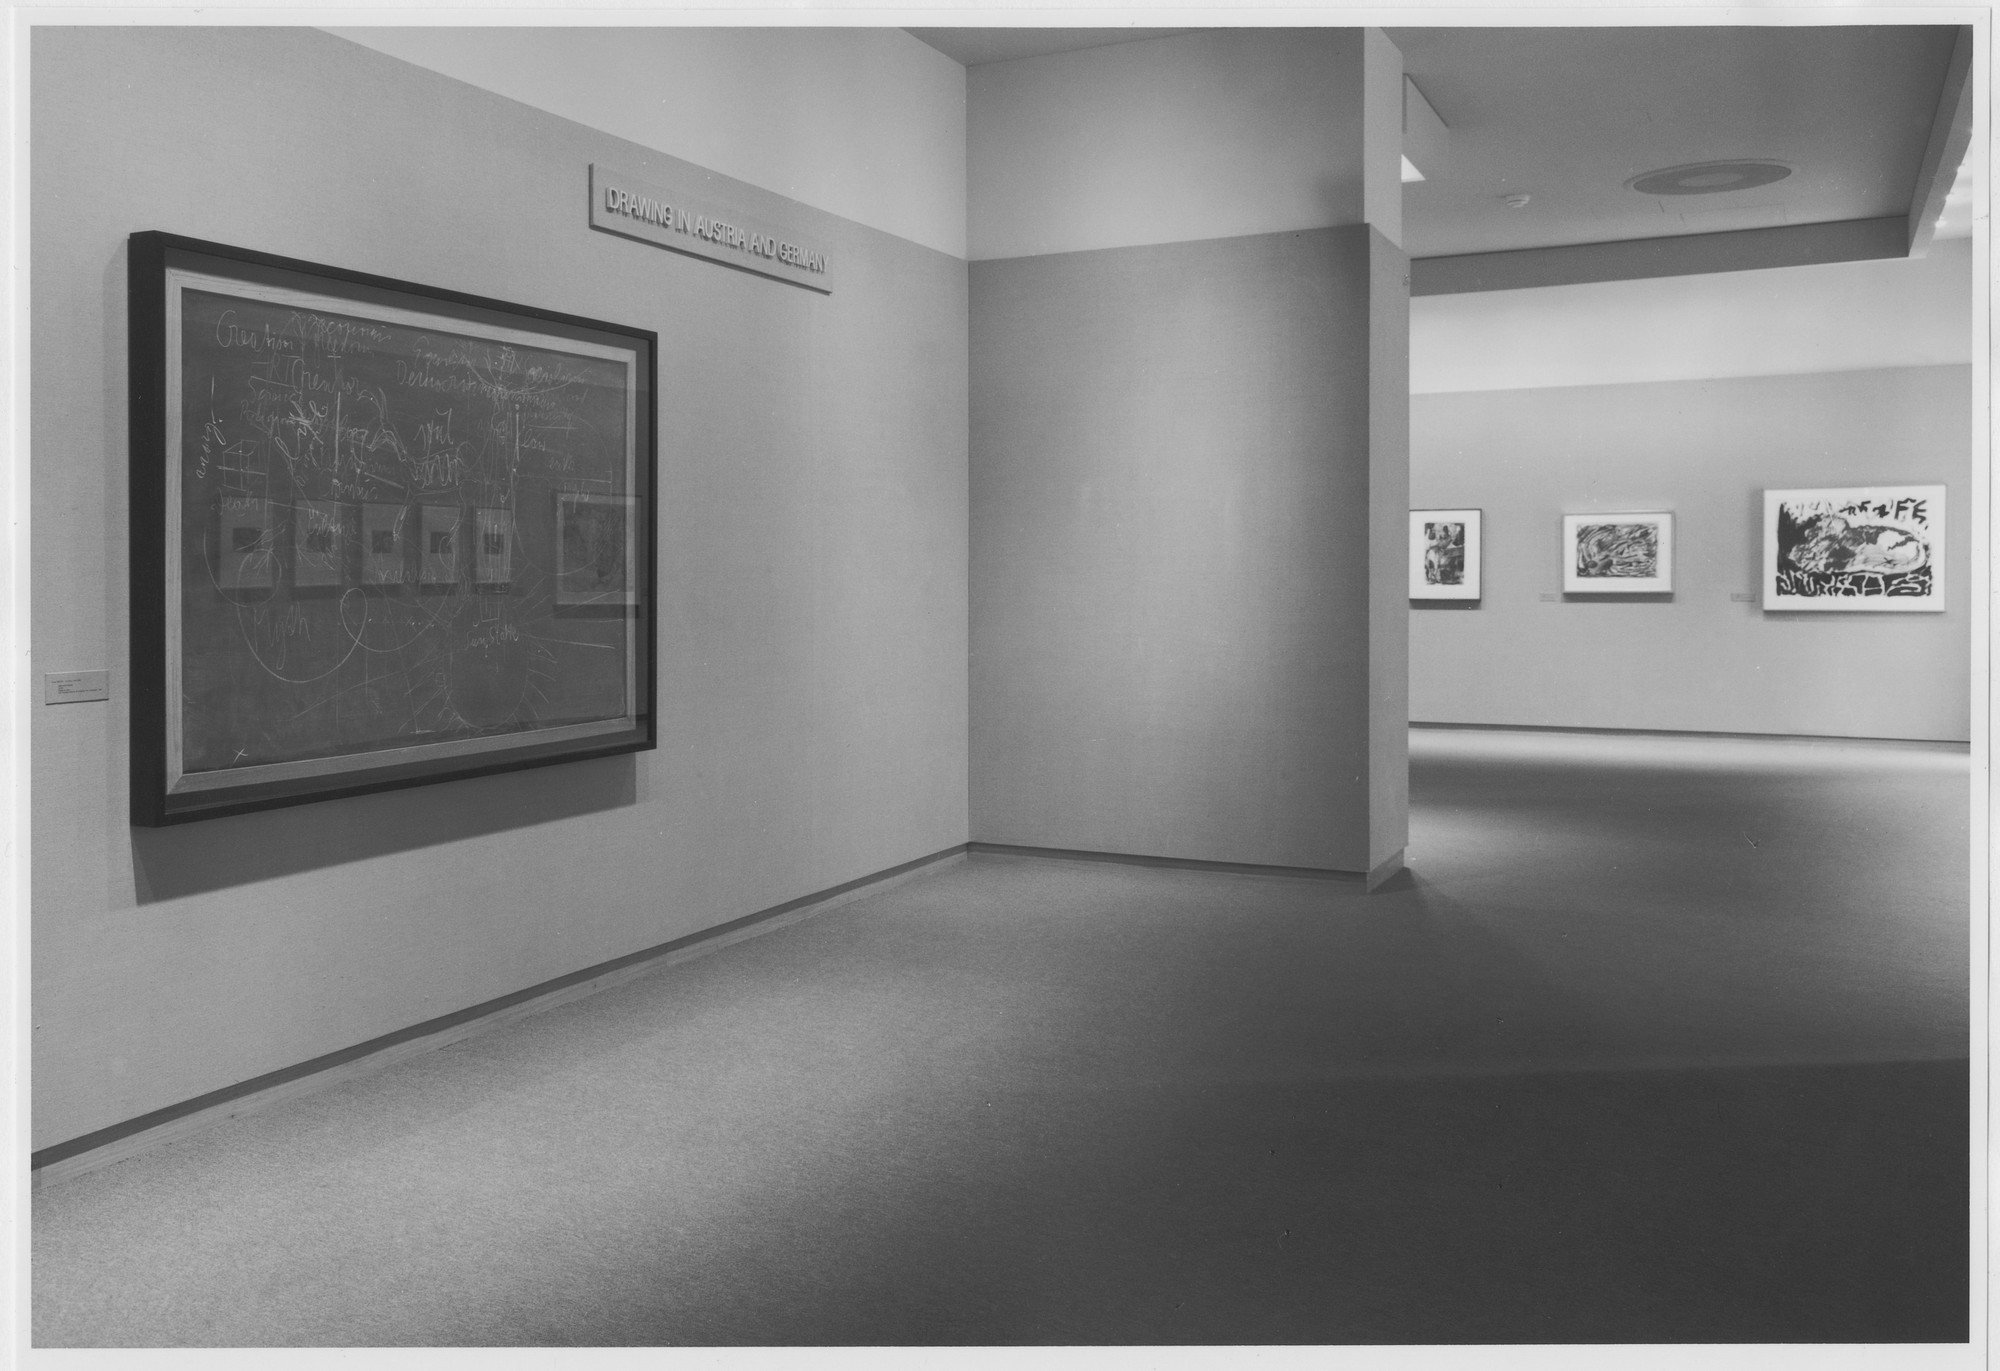 "Installation view of the exhibition, ""Drawings in Austria and Germany"" May 25, 1985–October 29, 1985. Photographic Archive. The Museum of Modern Art Archives, New York. IN1398.1. Photograph by Katherine Keller."